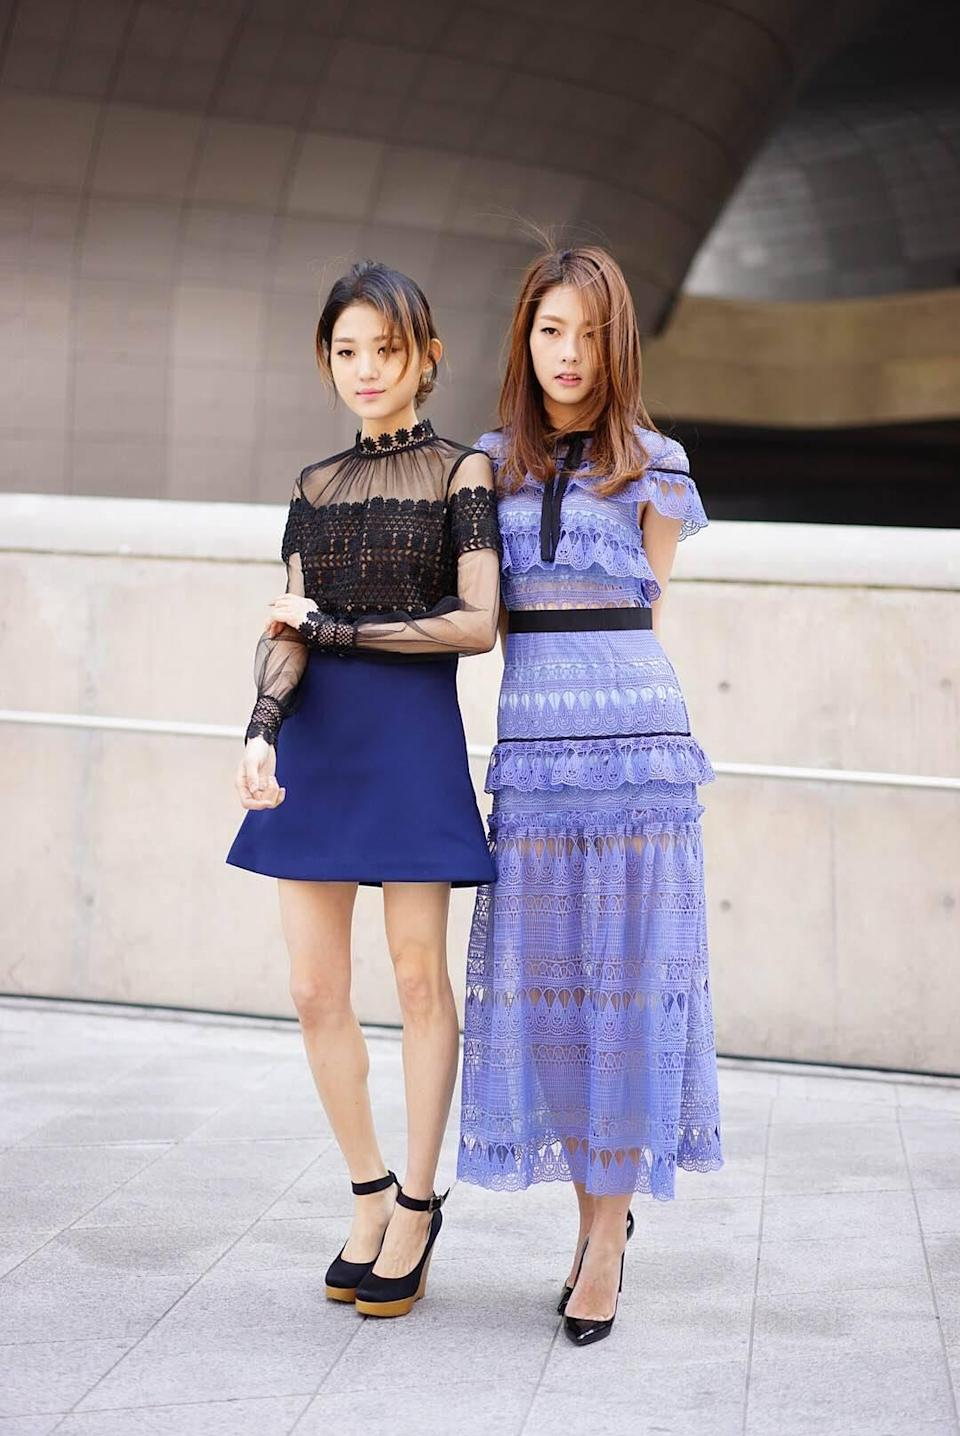 """<p>Within a few seasons, <a href=""""https://www.yahoo.com/style/11-jaw-dropping-dresses-from-c1442098225220.html"""" data-ylk=""""slk:Self-Portrait's edgy-feminine dresses;outcm:mb_qualified_link;_E:mb_qualified_link;ct:story;"""" class=""""link rapid-noclick-resp yahoo-link"""">Self-Portrait's edgy-feminine dresses</a> have become regulars on the red carpet and in street style snaps. But if you don't have $600 to drop on a Self-Portrait frock, here's how to achieve the same look for pennies on the dollar. (<i>Photo: <a href=""""http://garbagelapsap.com"""" rel=""""nofollow noopener"""" target=""""_blank"""" data-ylk=""""slk:Garbagelapsap"""" class=""""link rapid-noclick-resp"""">Garbagelapsap</a>)</i></p>"""